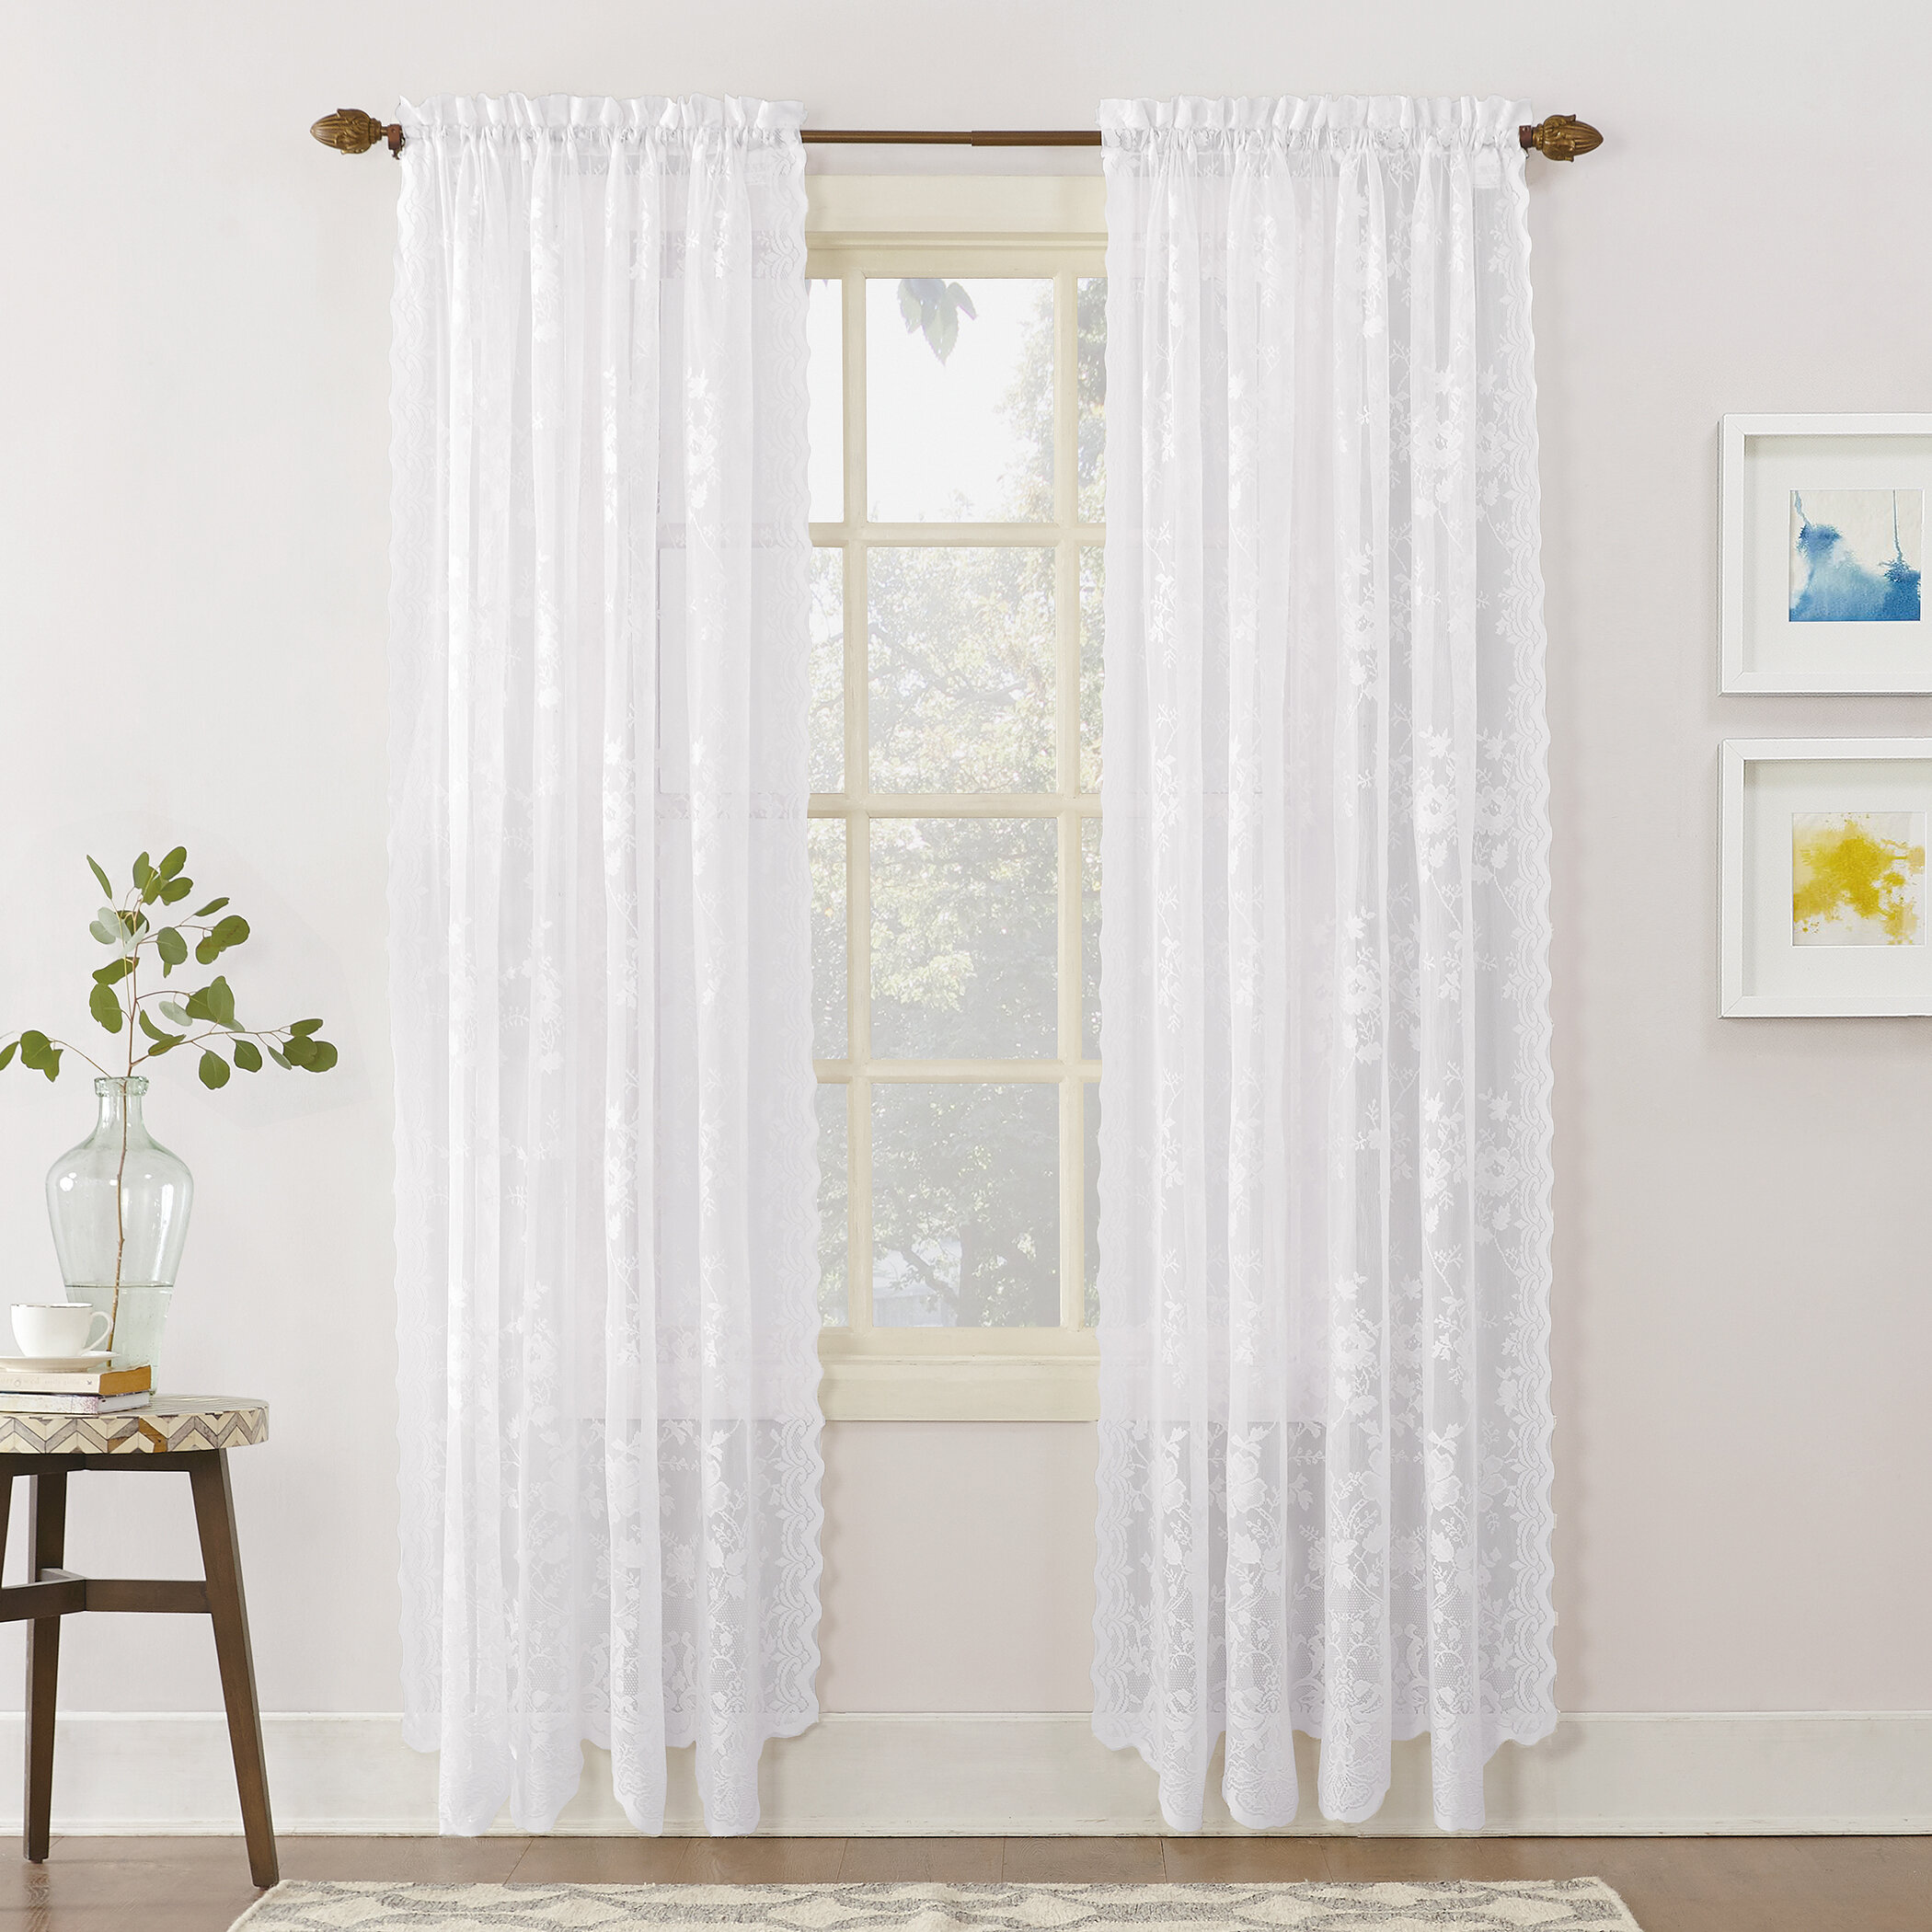 made curtains can be on pair ikea ready sheer curtain patterned products rod white textiles gb en gjertrud a the used rugs blinds